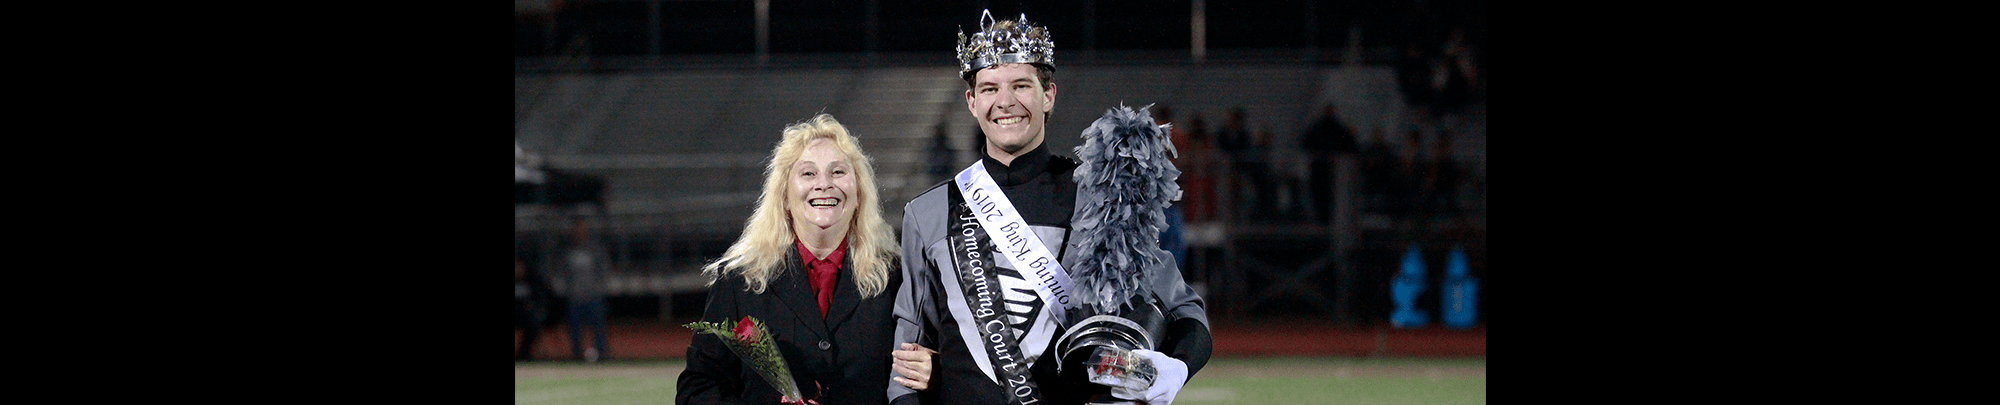 Homecoming king and a woman pose together outside